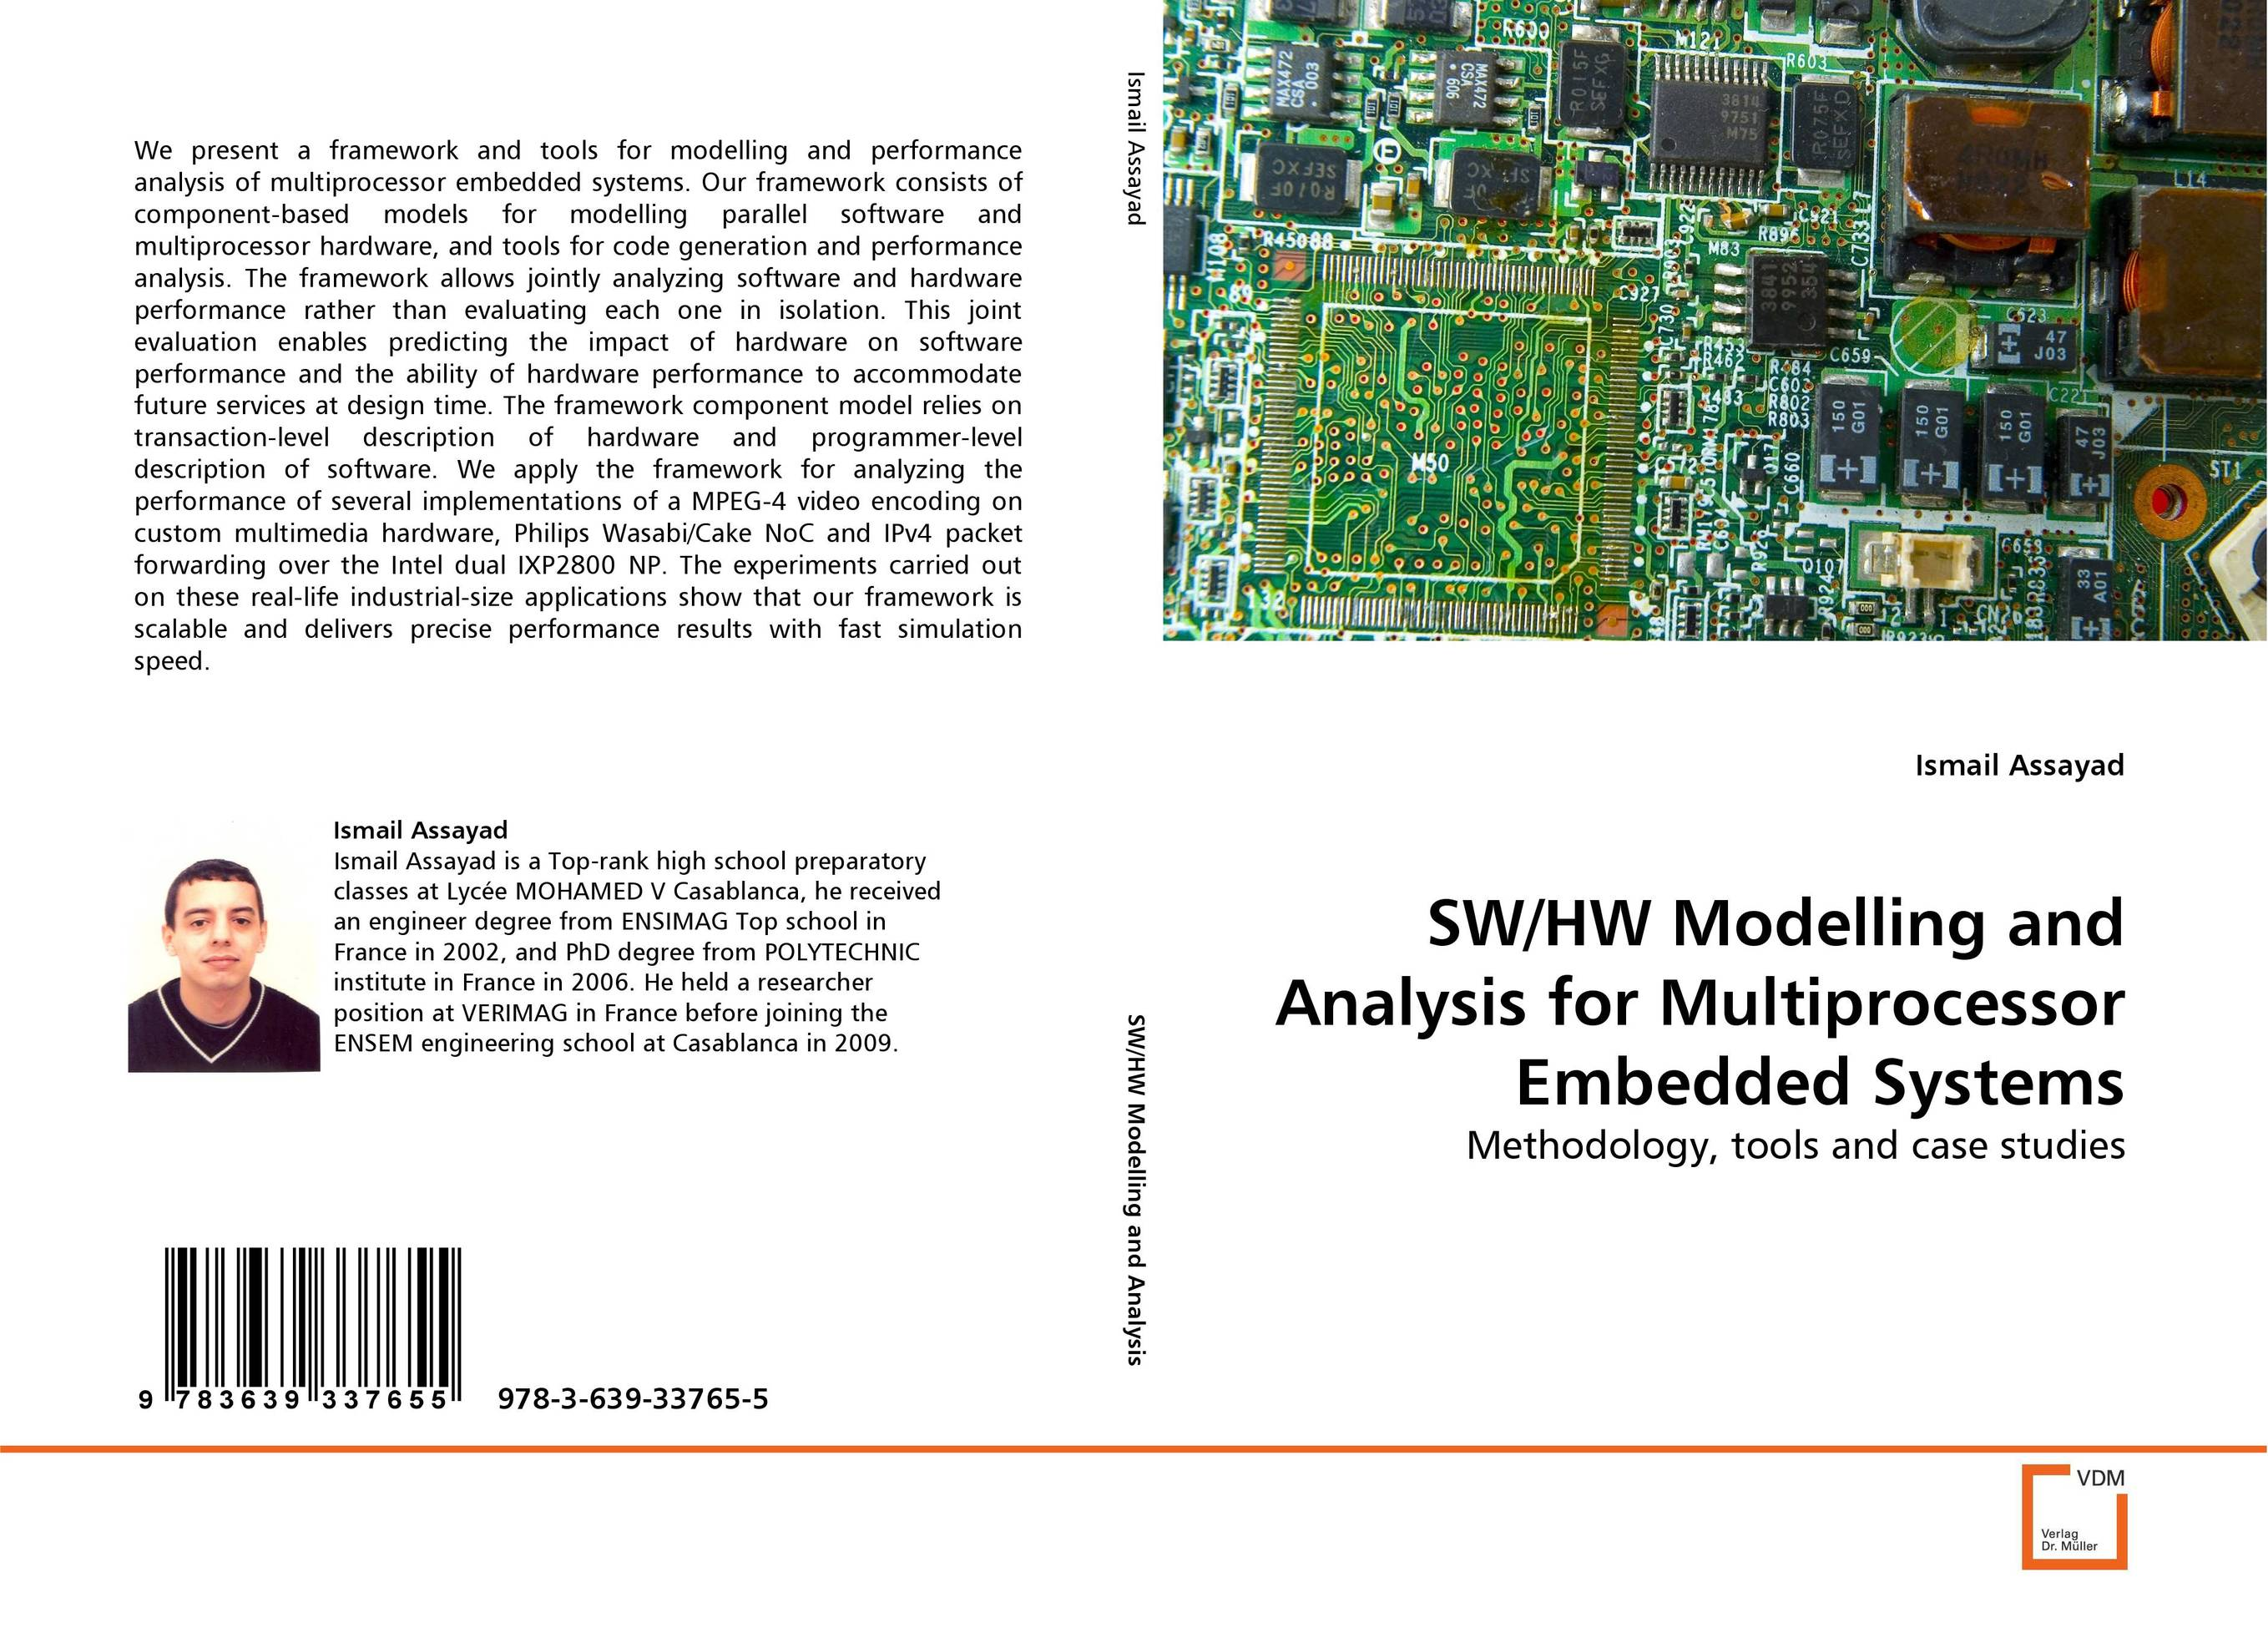 SW/HW Modelling and Analysis for Multiprocessor Embedded Systems mastering leadership an integrated framework for breakthrough performance and extraordinary business results